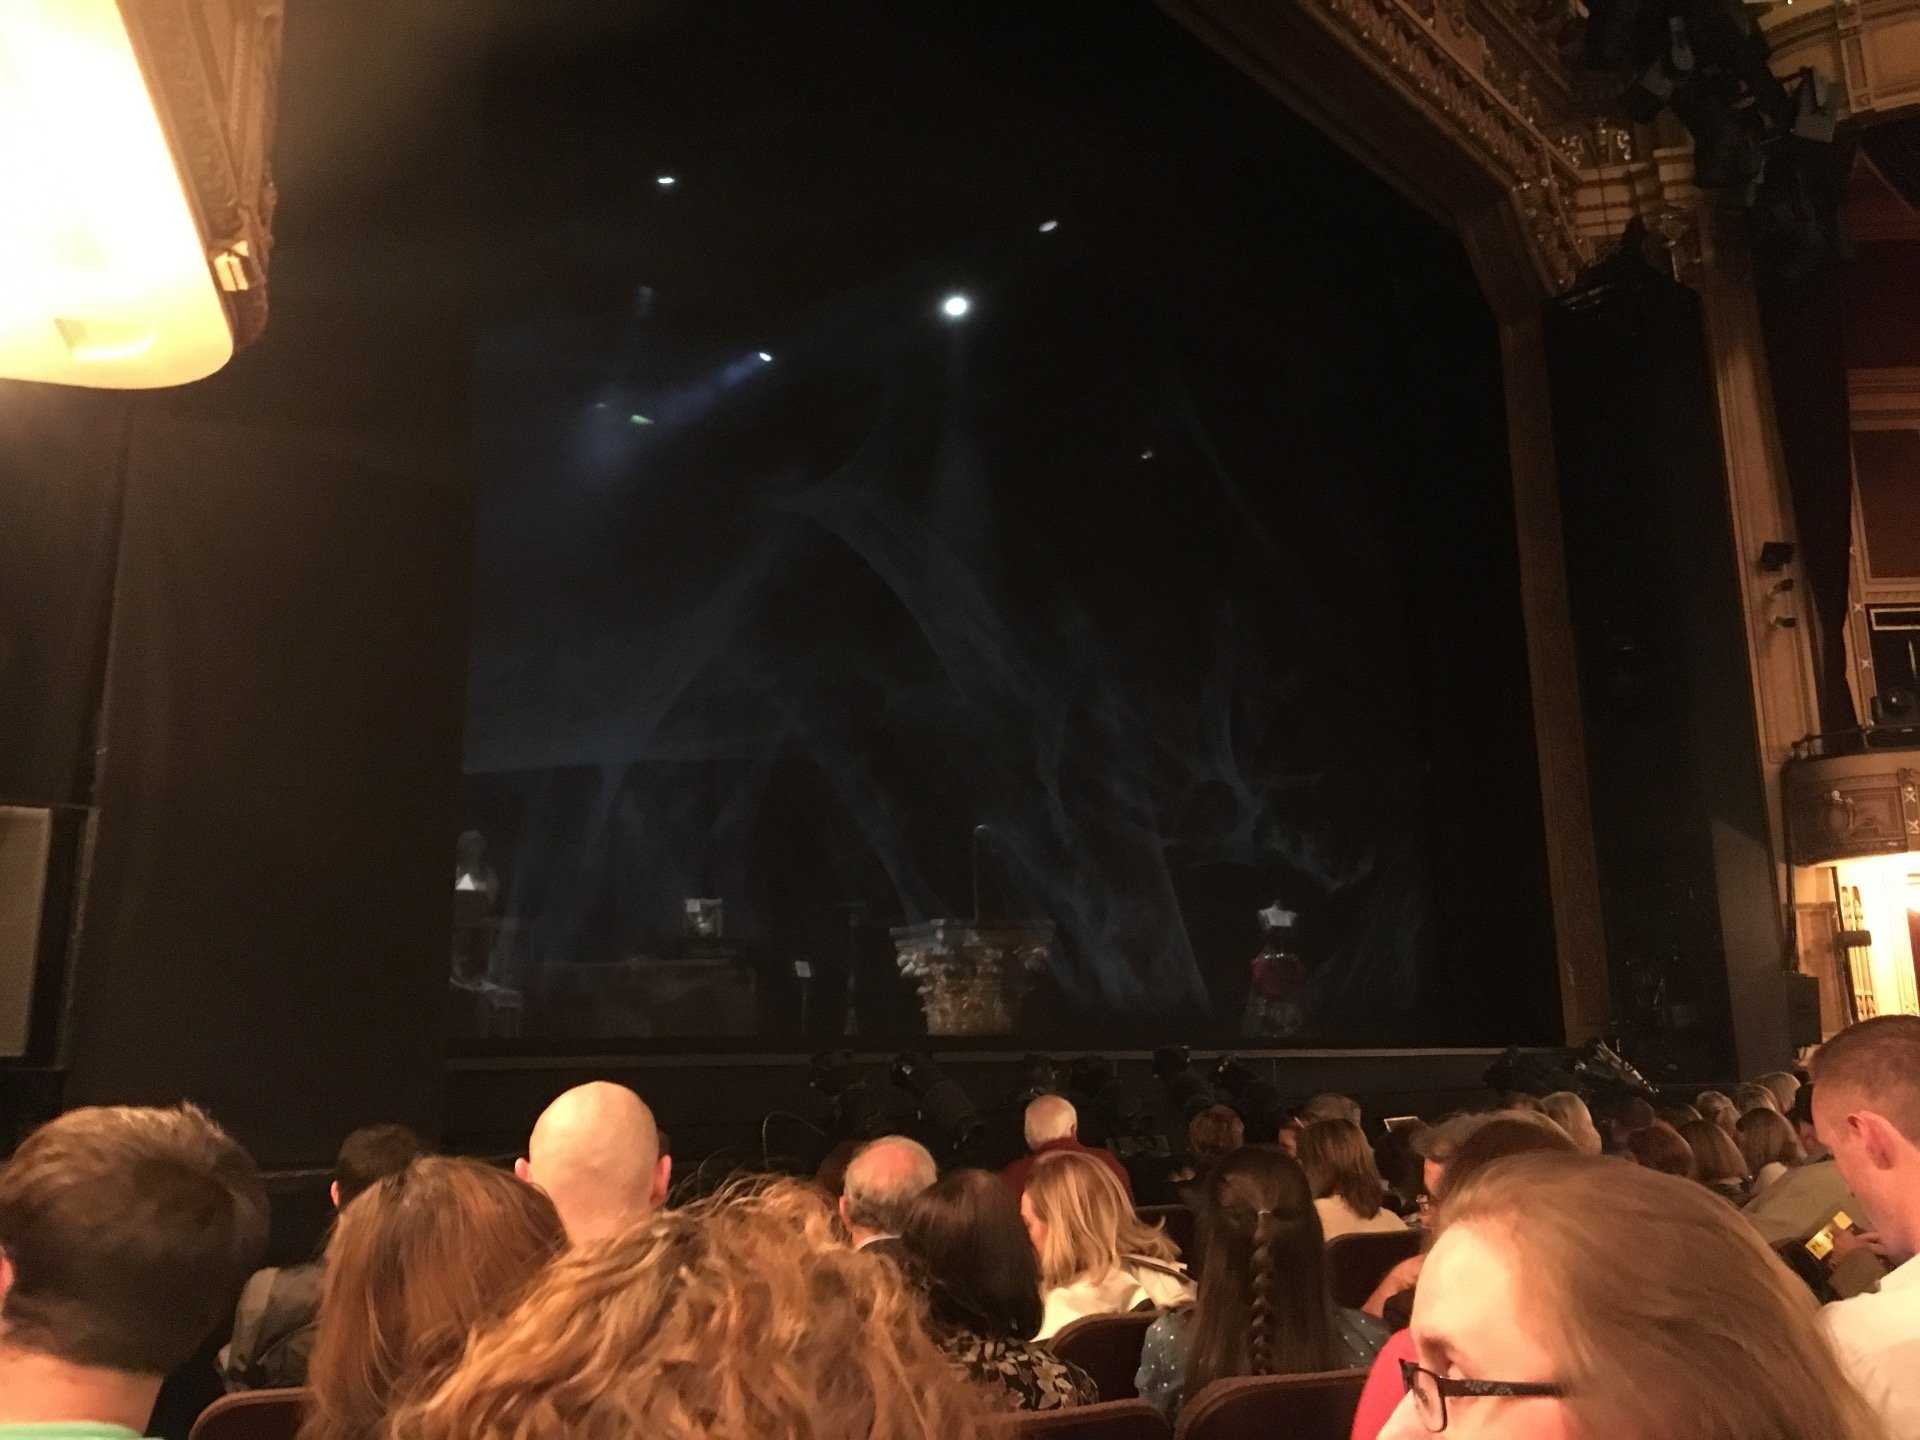 Hippodrome Theatre Section Left Orchestra Row H Seat 13 and 15